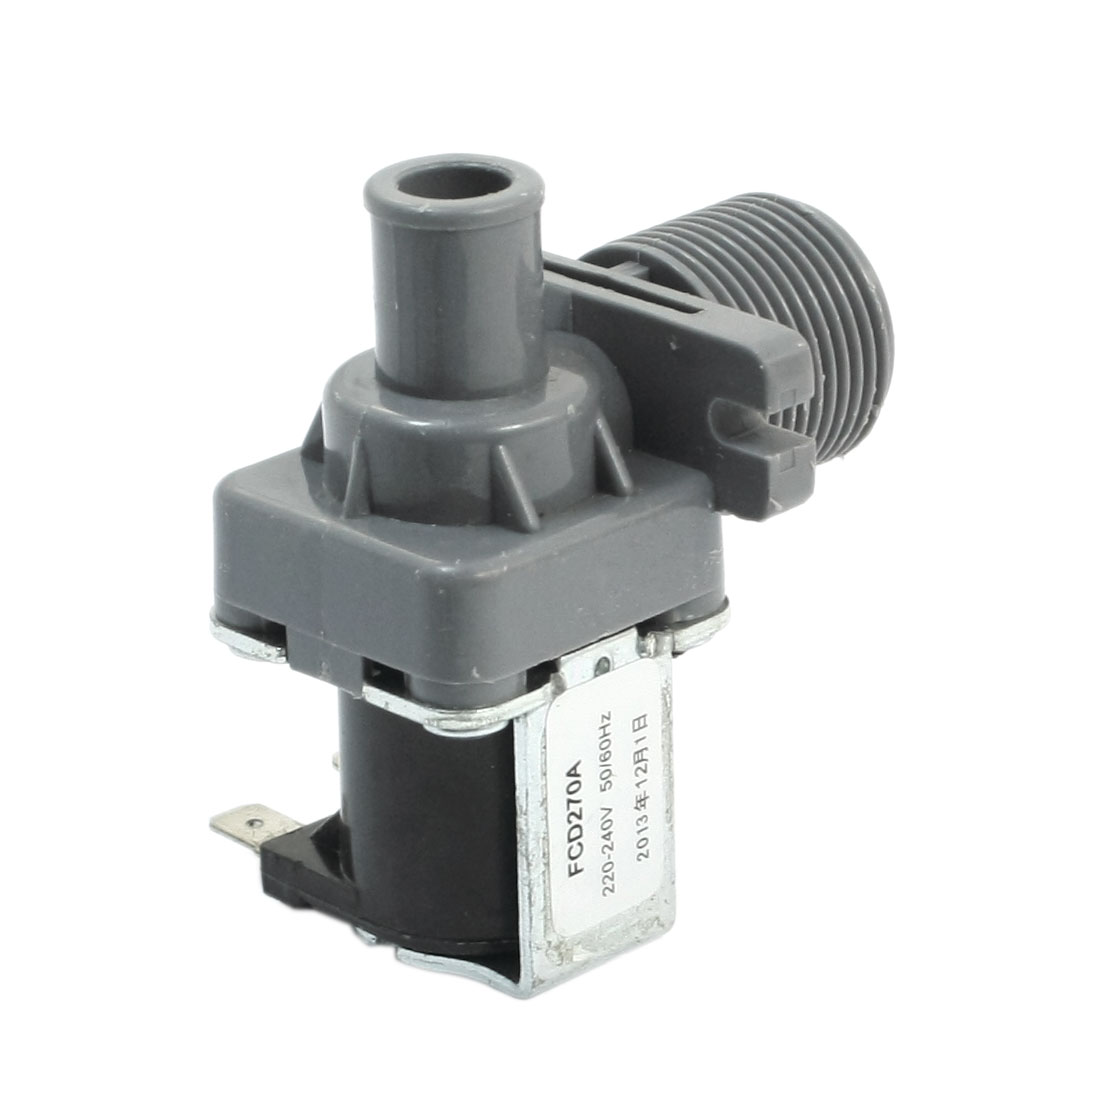 G3/4 Male Threaded Water Inlet Electric Solenoid Valve AC 220-240V for Washer